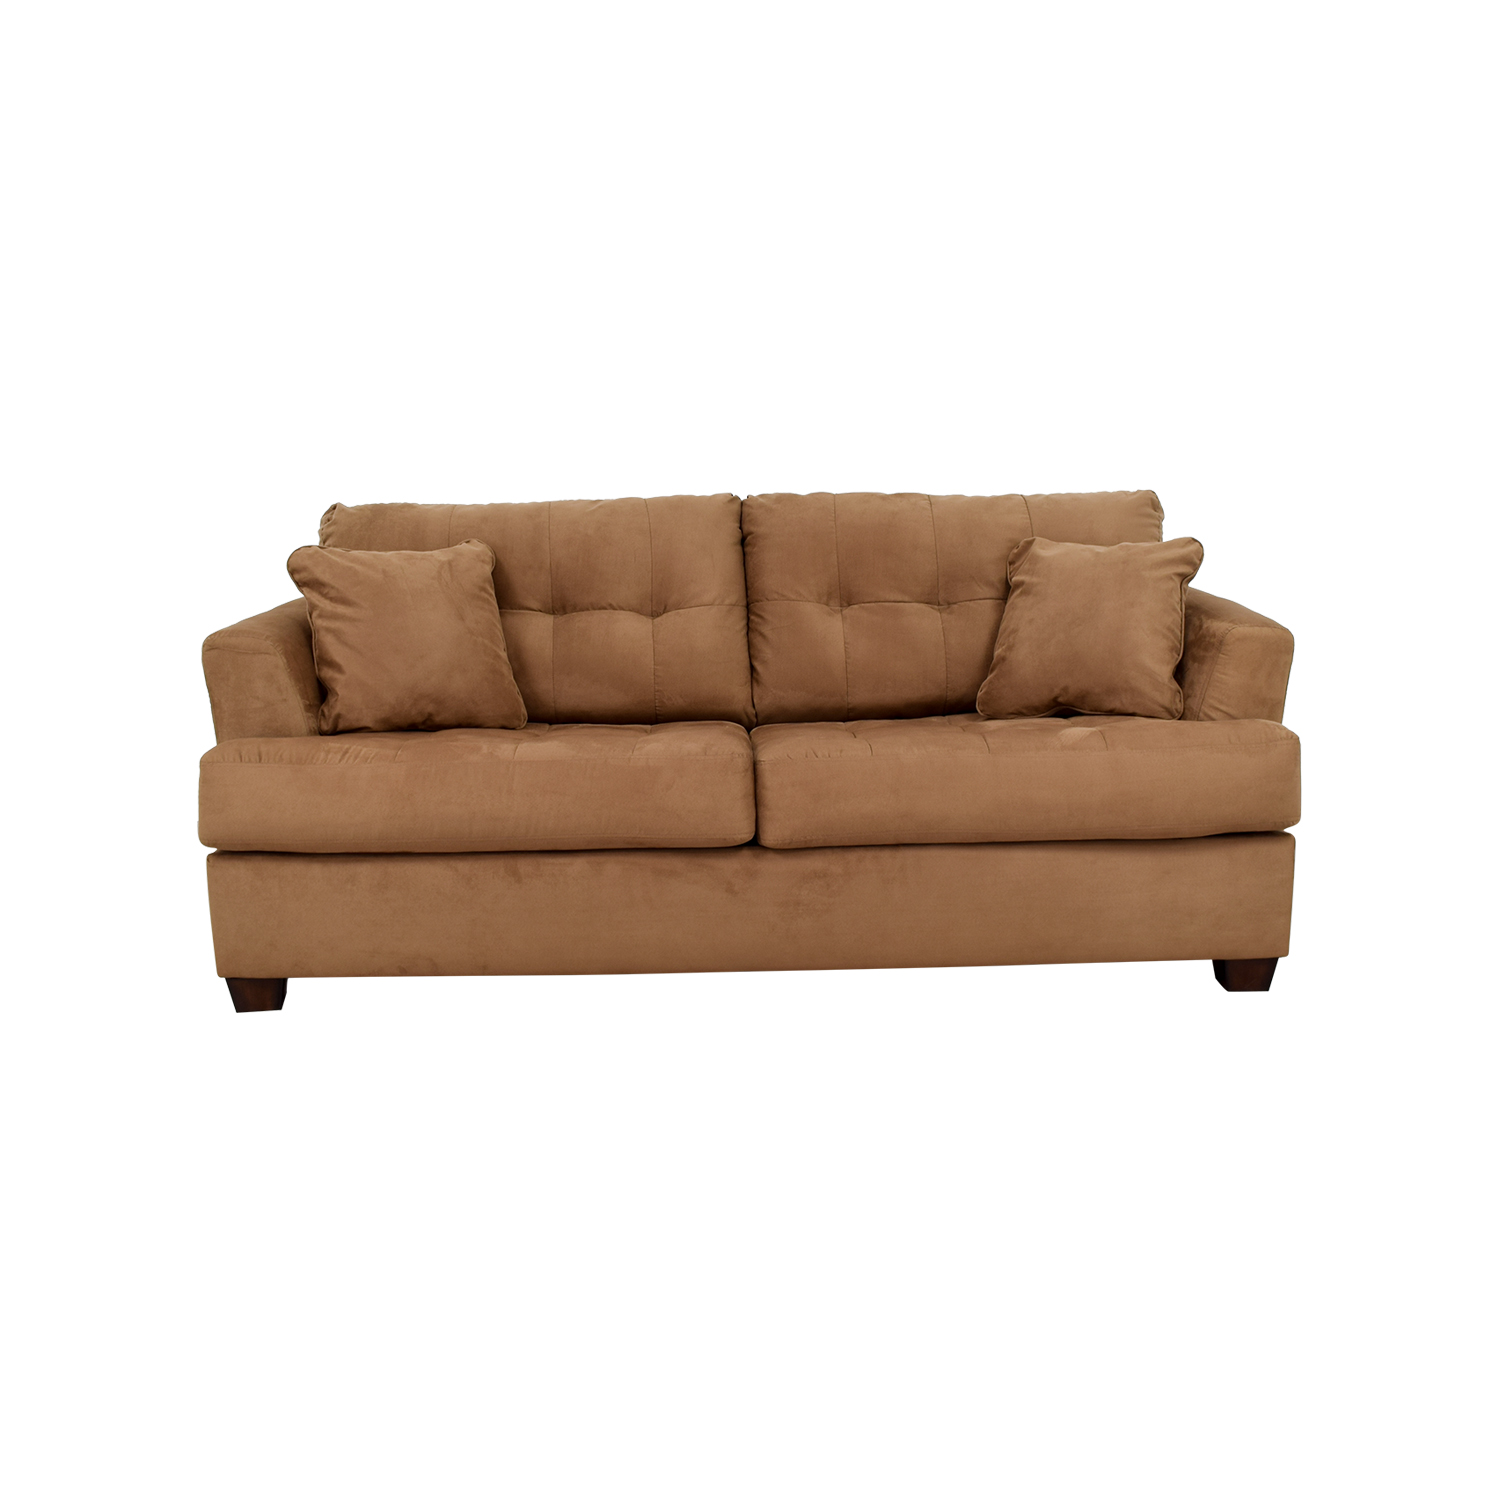 59% OFF Ashley Furniture Ashley Furniture Tan Microfiber